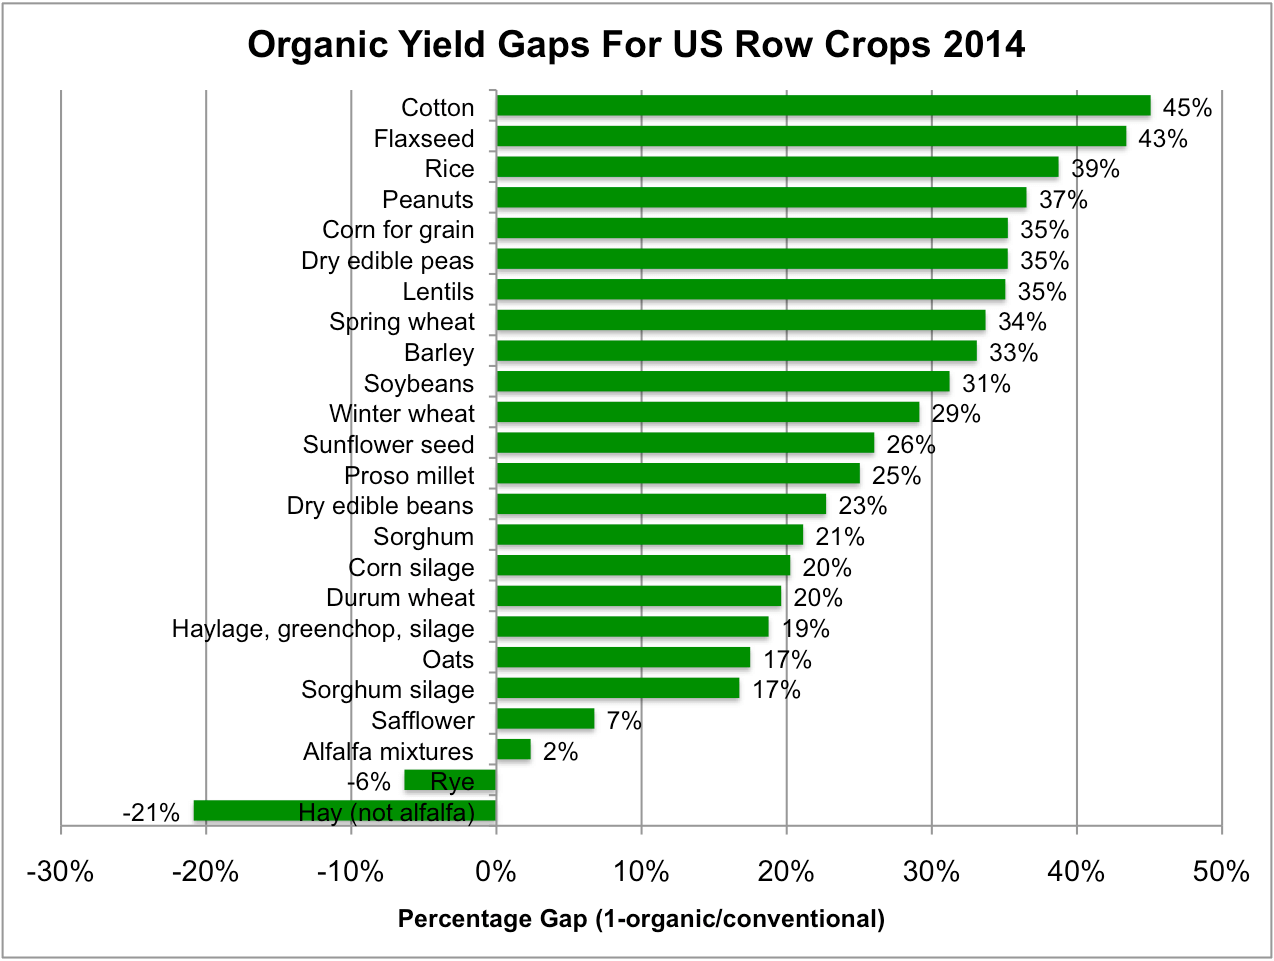 Organic yields are substantially lower for many major row crops